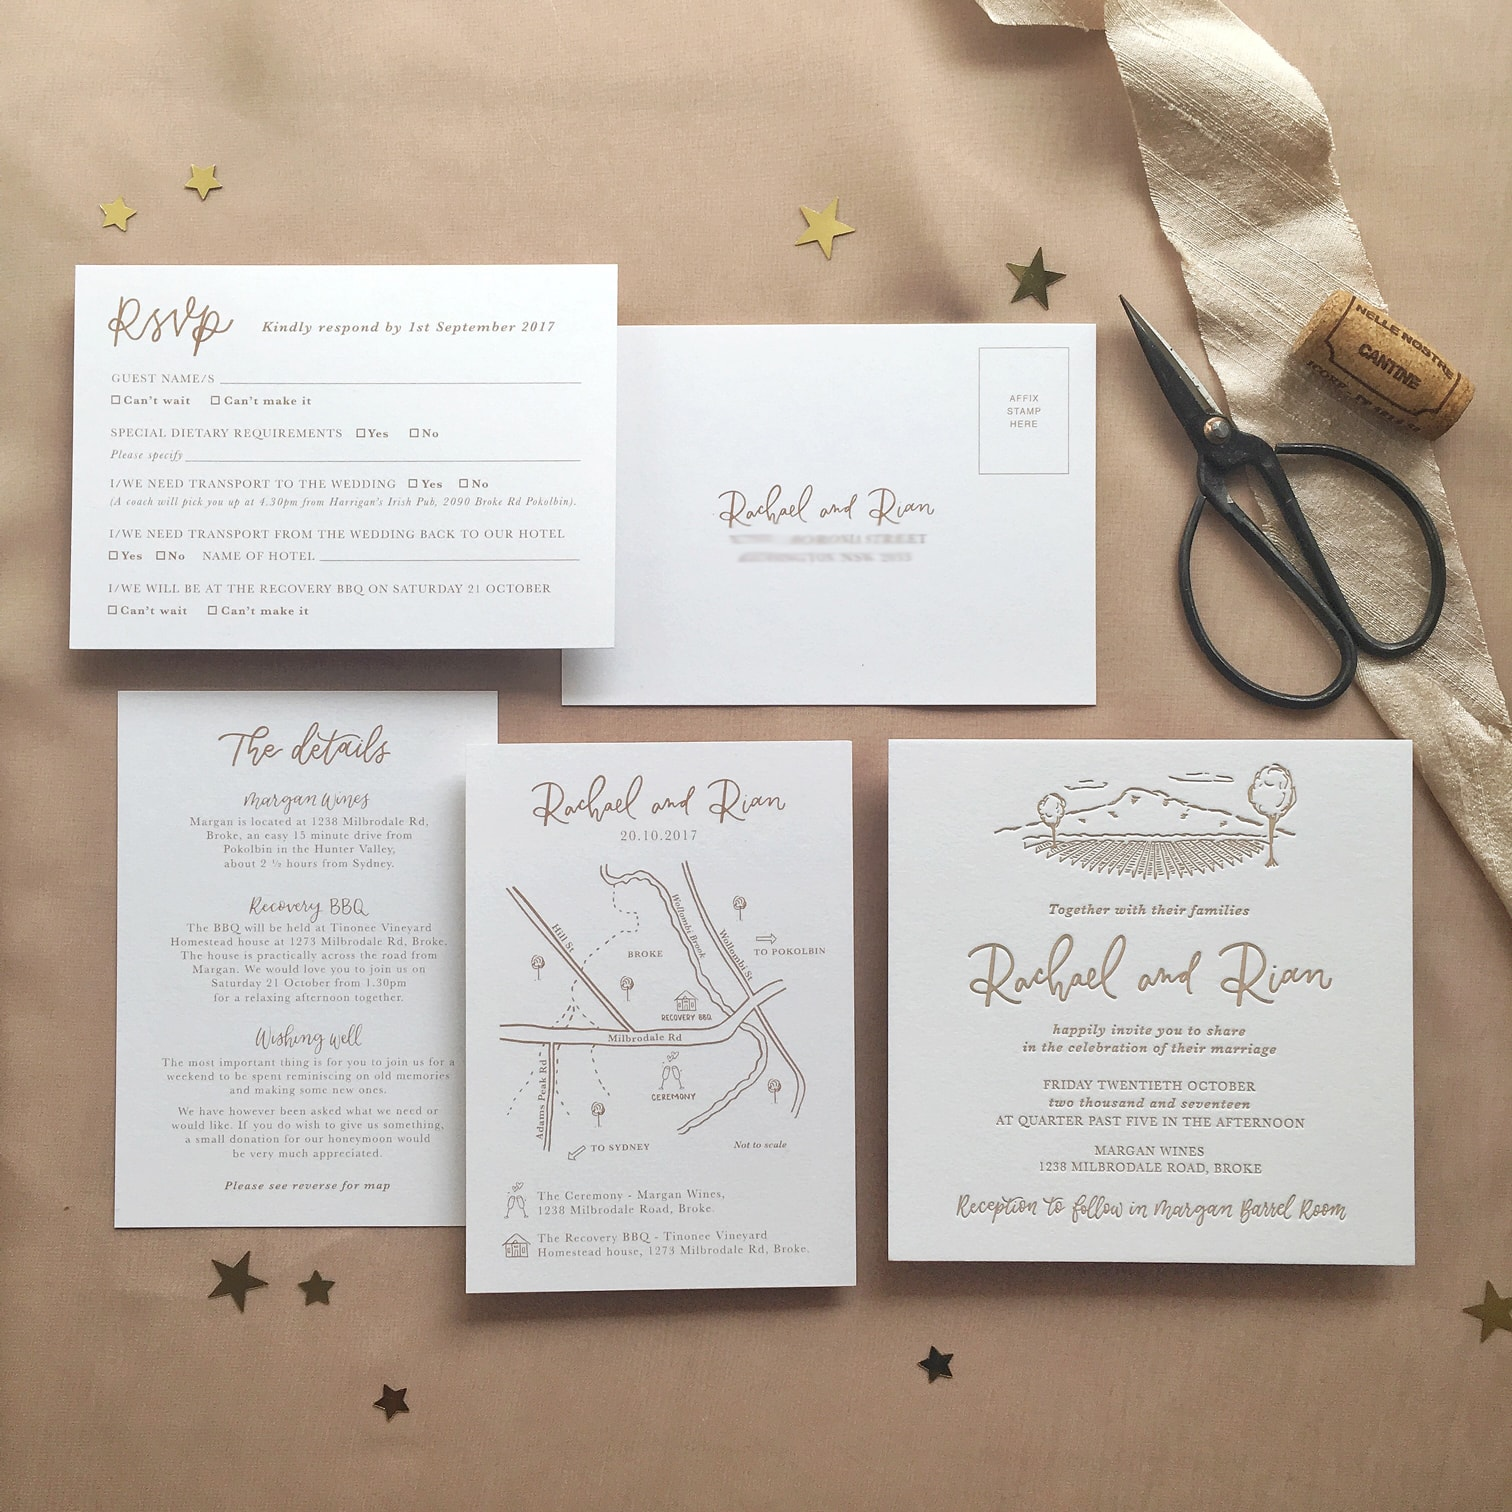 Light of Leni | Wedding Stationery Suite | Letter pressed with hand drawn details